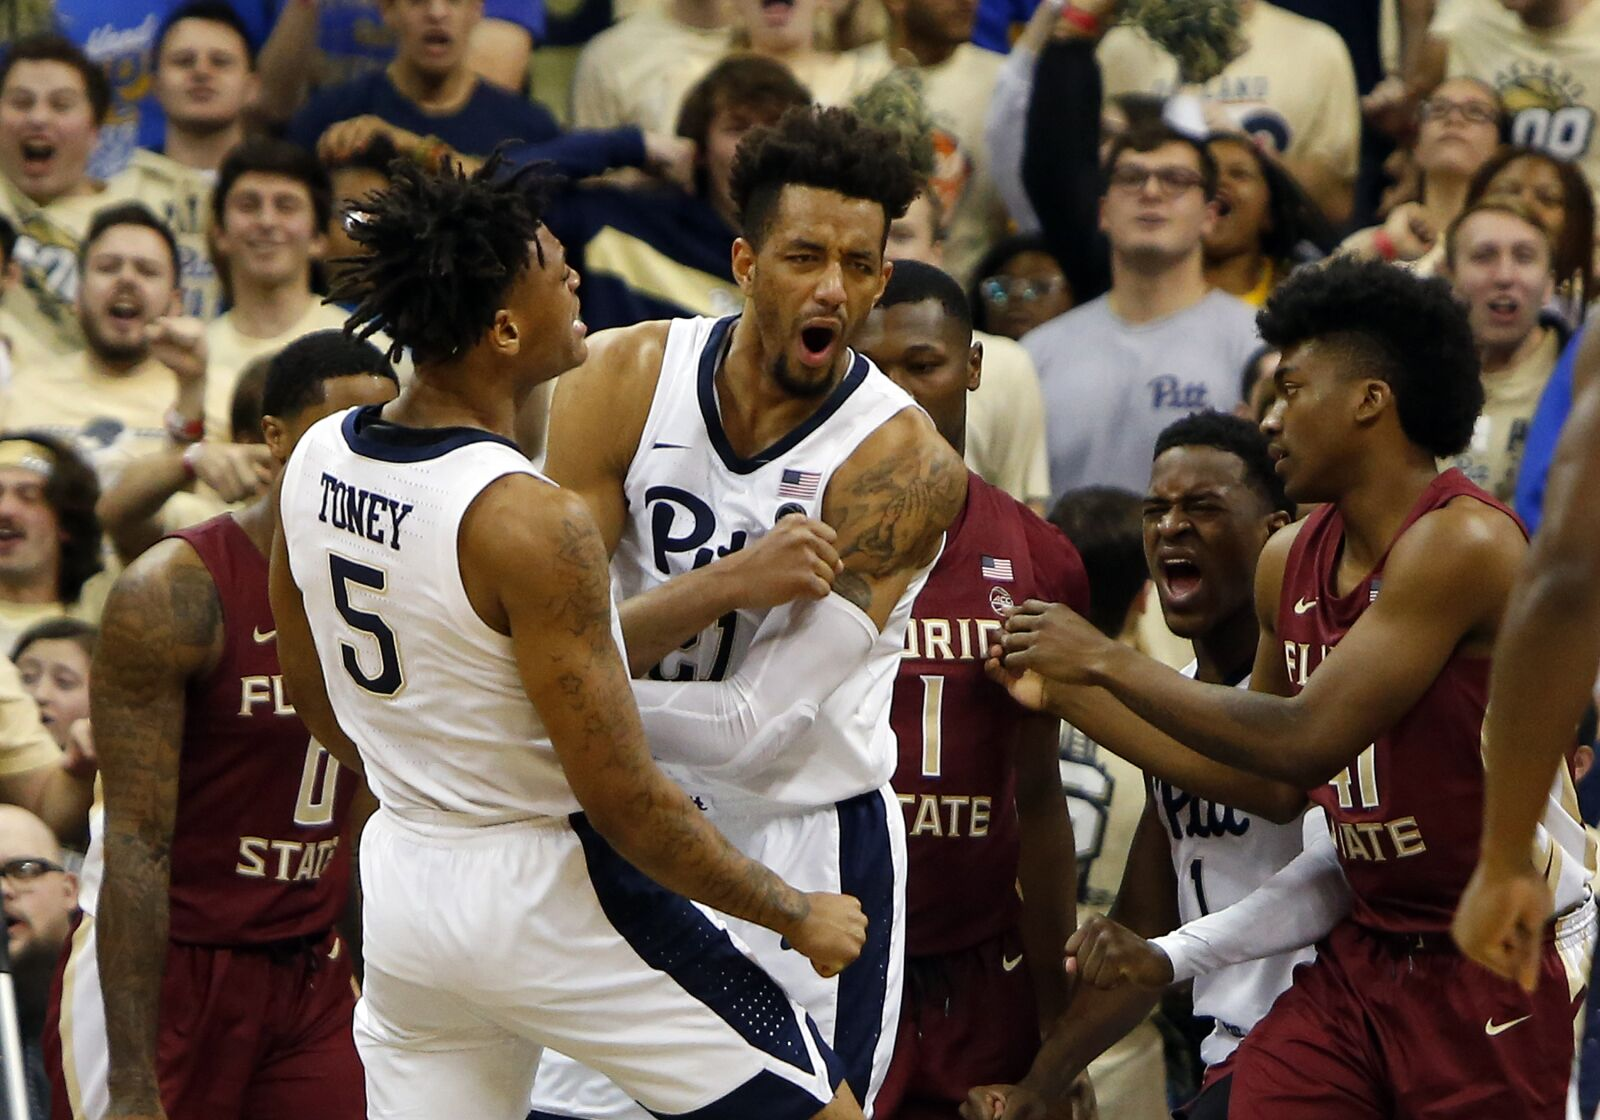 Pittsburgh Basketball: WVU, Kansas State highlights 2019-20 non-conference schedule